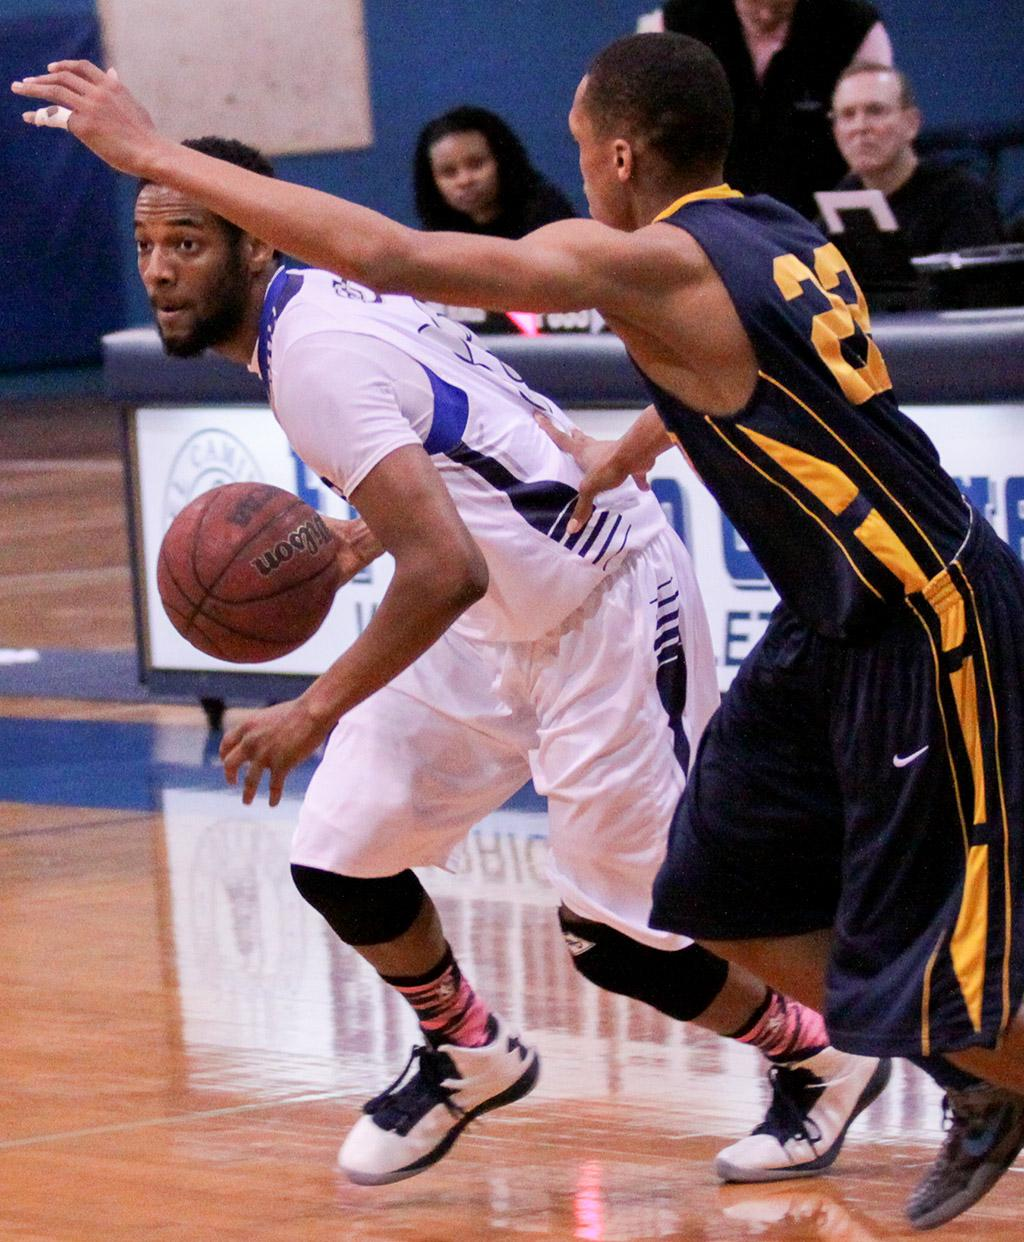 Marcus Clark, freshman shooting guard for the Warriors, drives past Donnell Drain, point guard for the Los Angeles Harbor College Seahawks, during the first half of the Warriors Feb. 15 game. The Warriors spent the majority of the game trailing the Seahawks in points and ended up losing, 60-70.